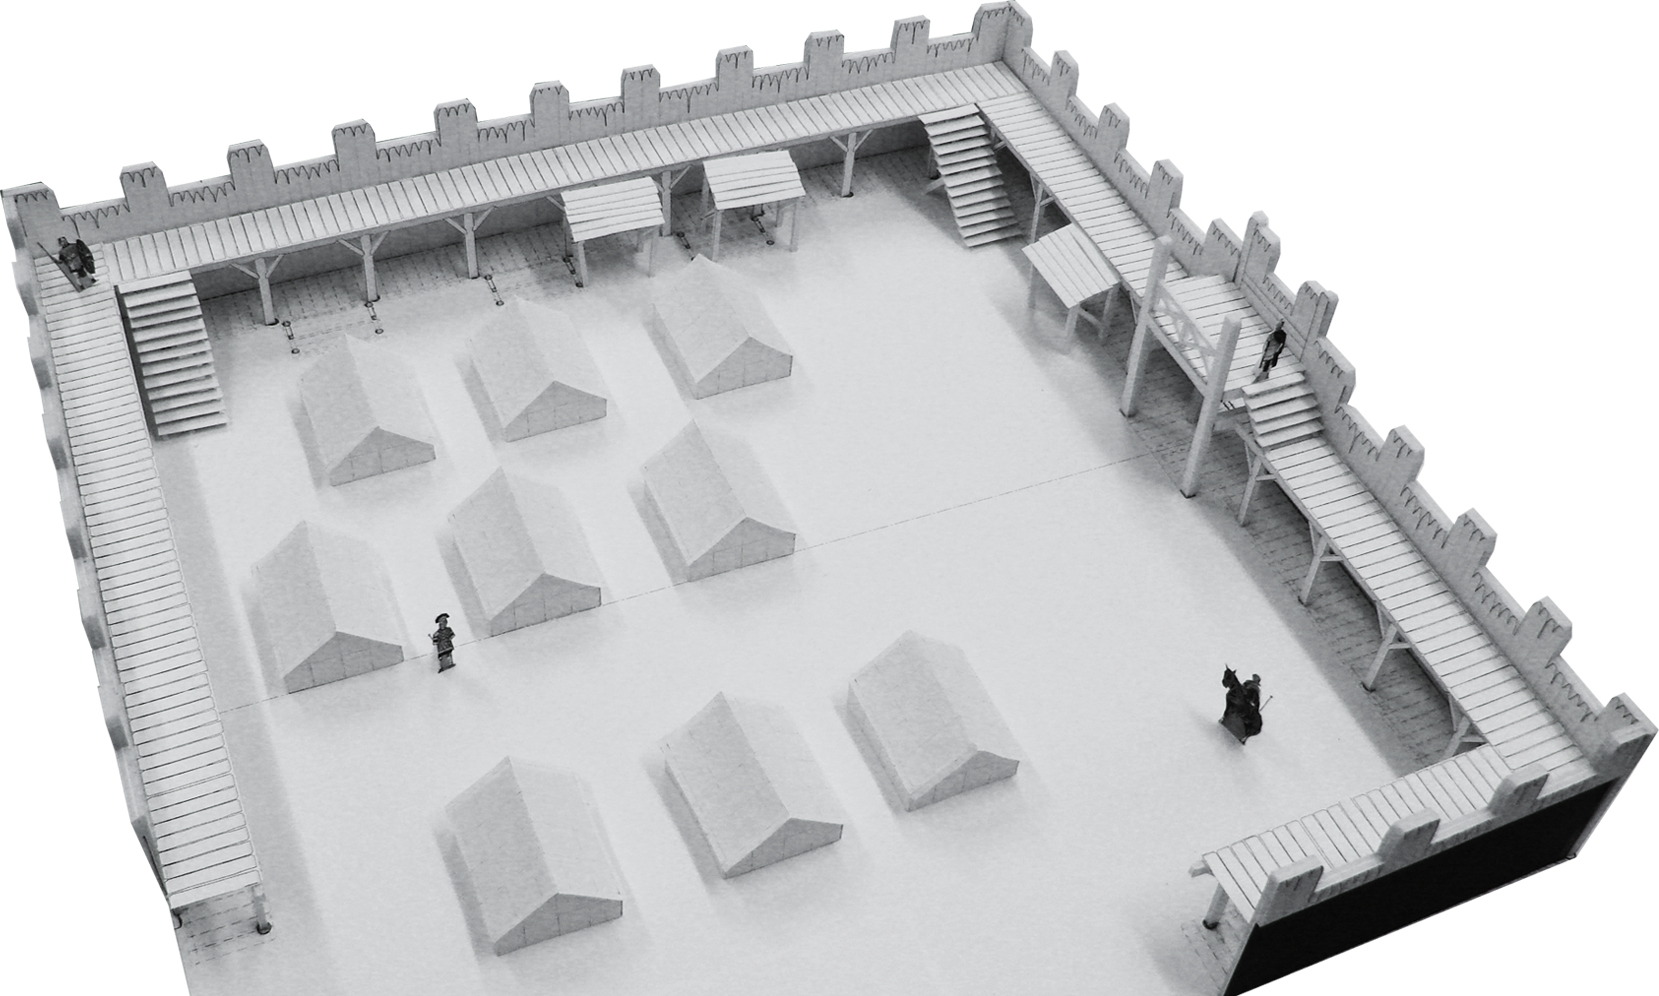 A 1/4 inch scale model of the fort built for the film, used by construction explanation, story boarding and stunt meetings.